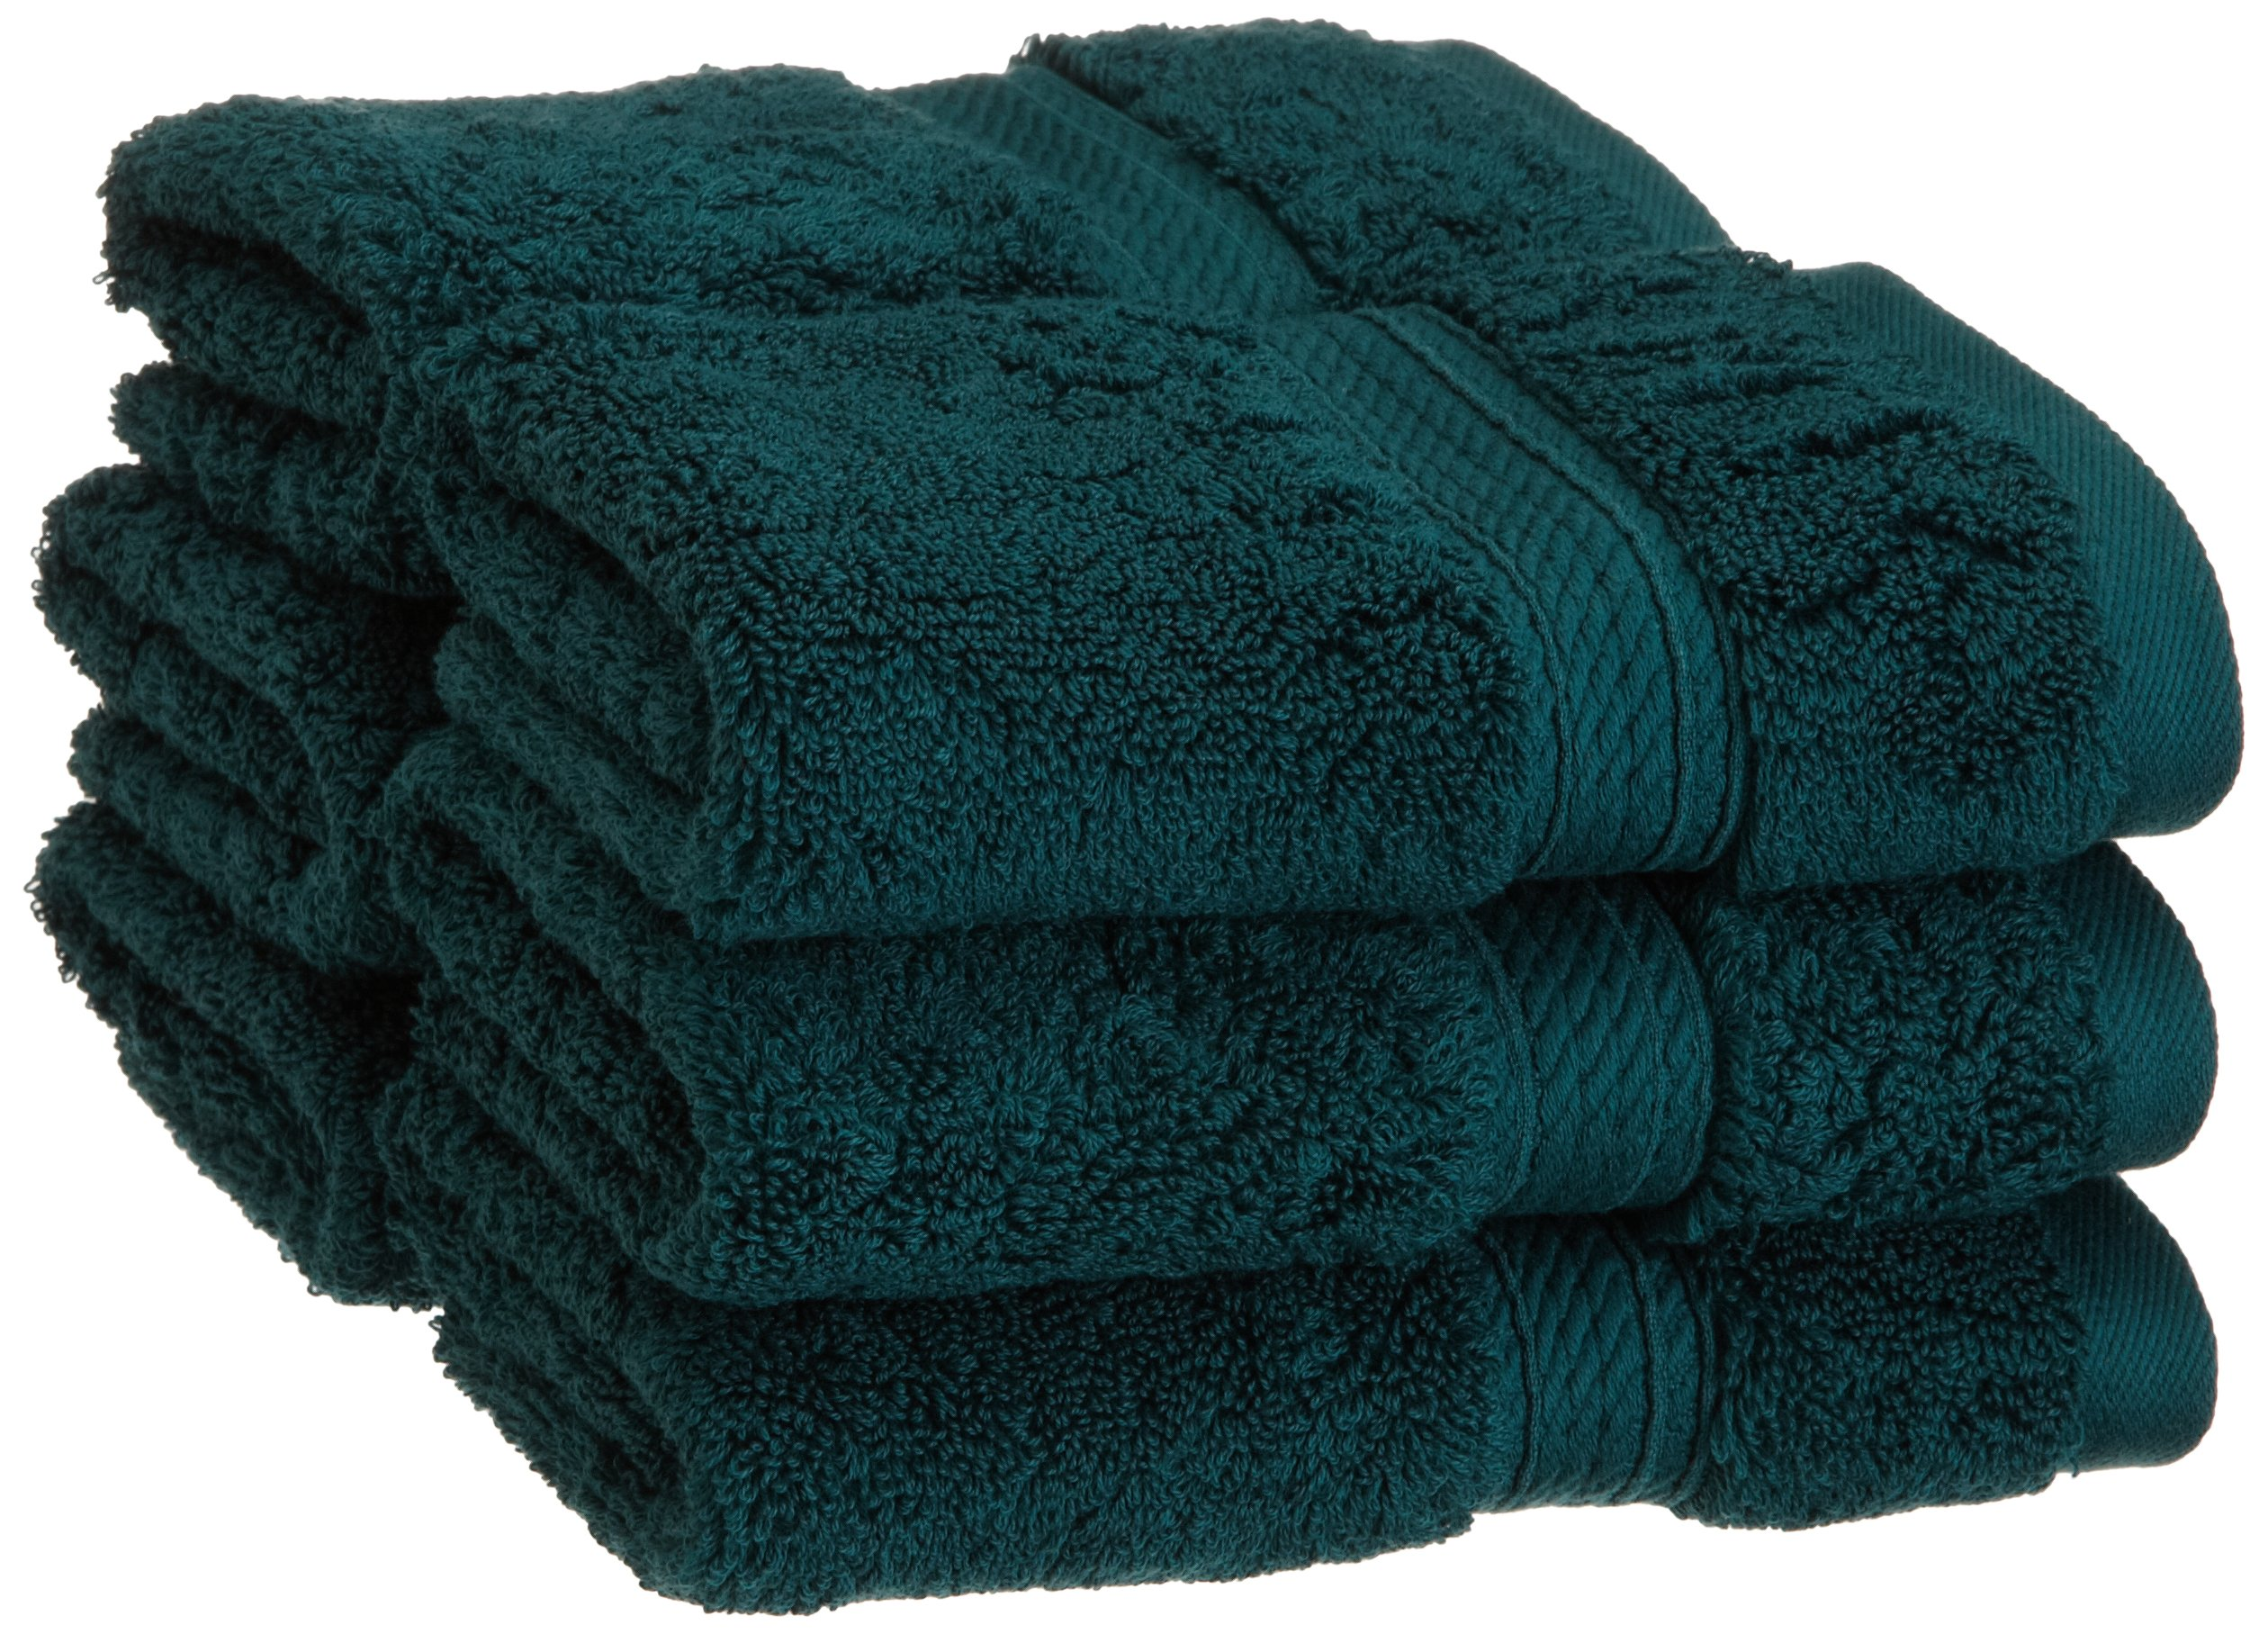 Superior 900 GSM Luxury Bathroom Face Towels, Made of 100% Premium Long-Staple Combed Cotton, Set of 6 Hotel & Spa Quality Washcloths - Teal, 13'' x 13'' each